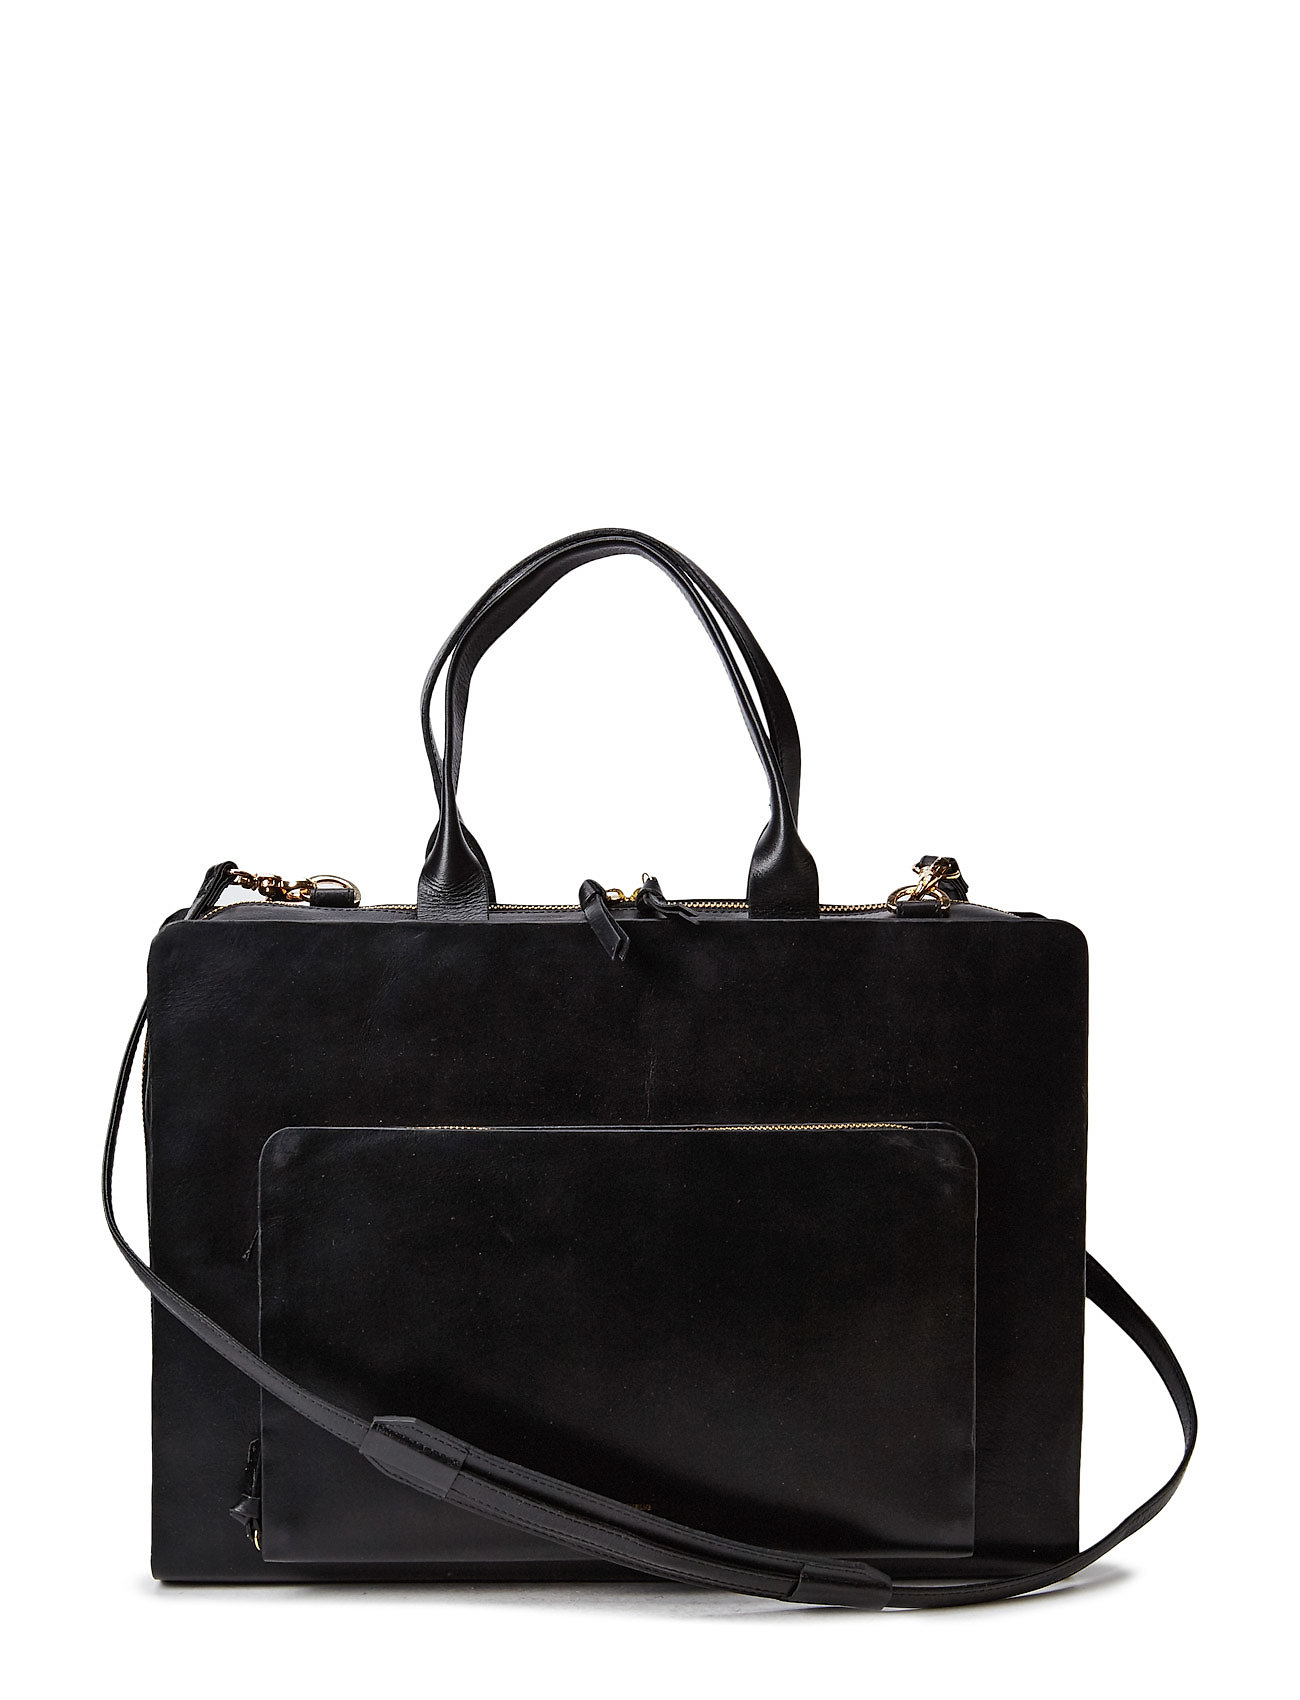 Royal RepubliQ Galax Day bag - BLACK